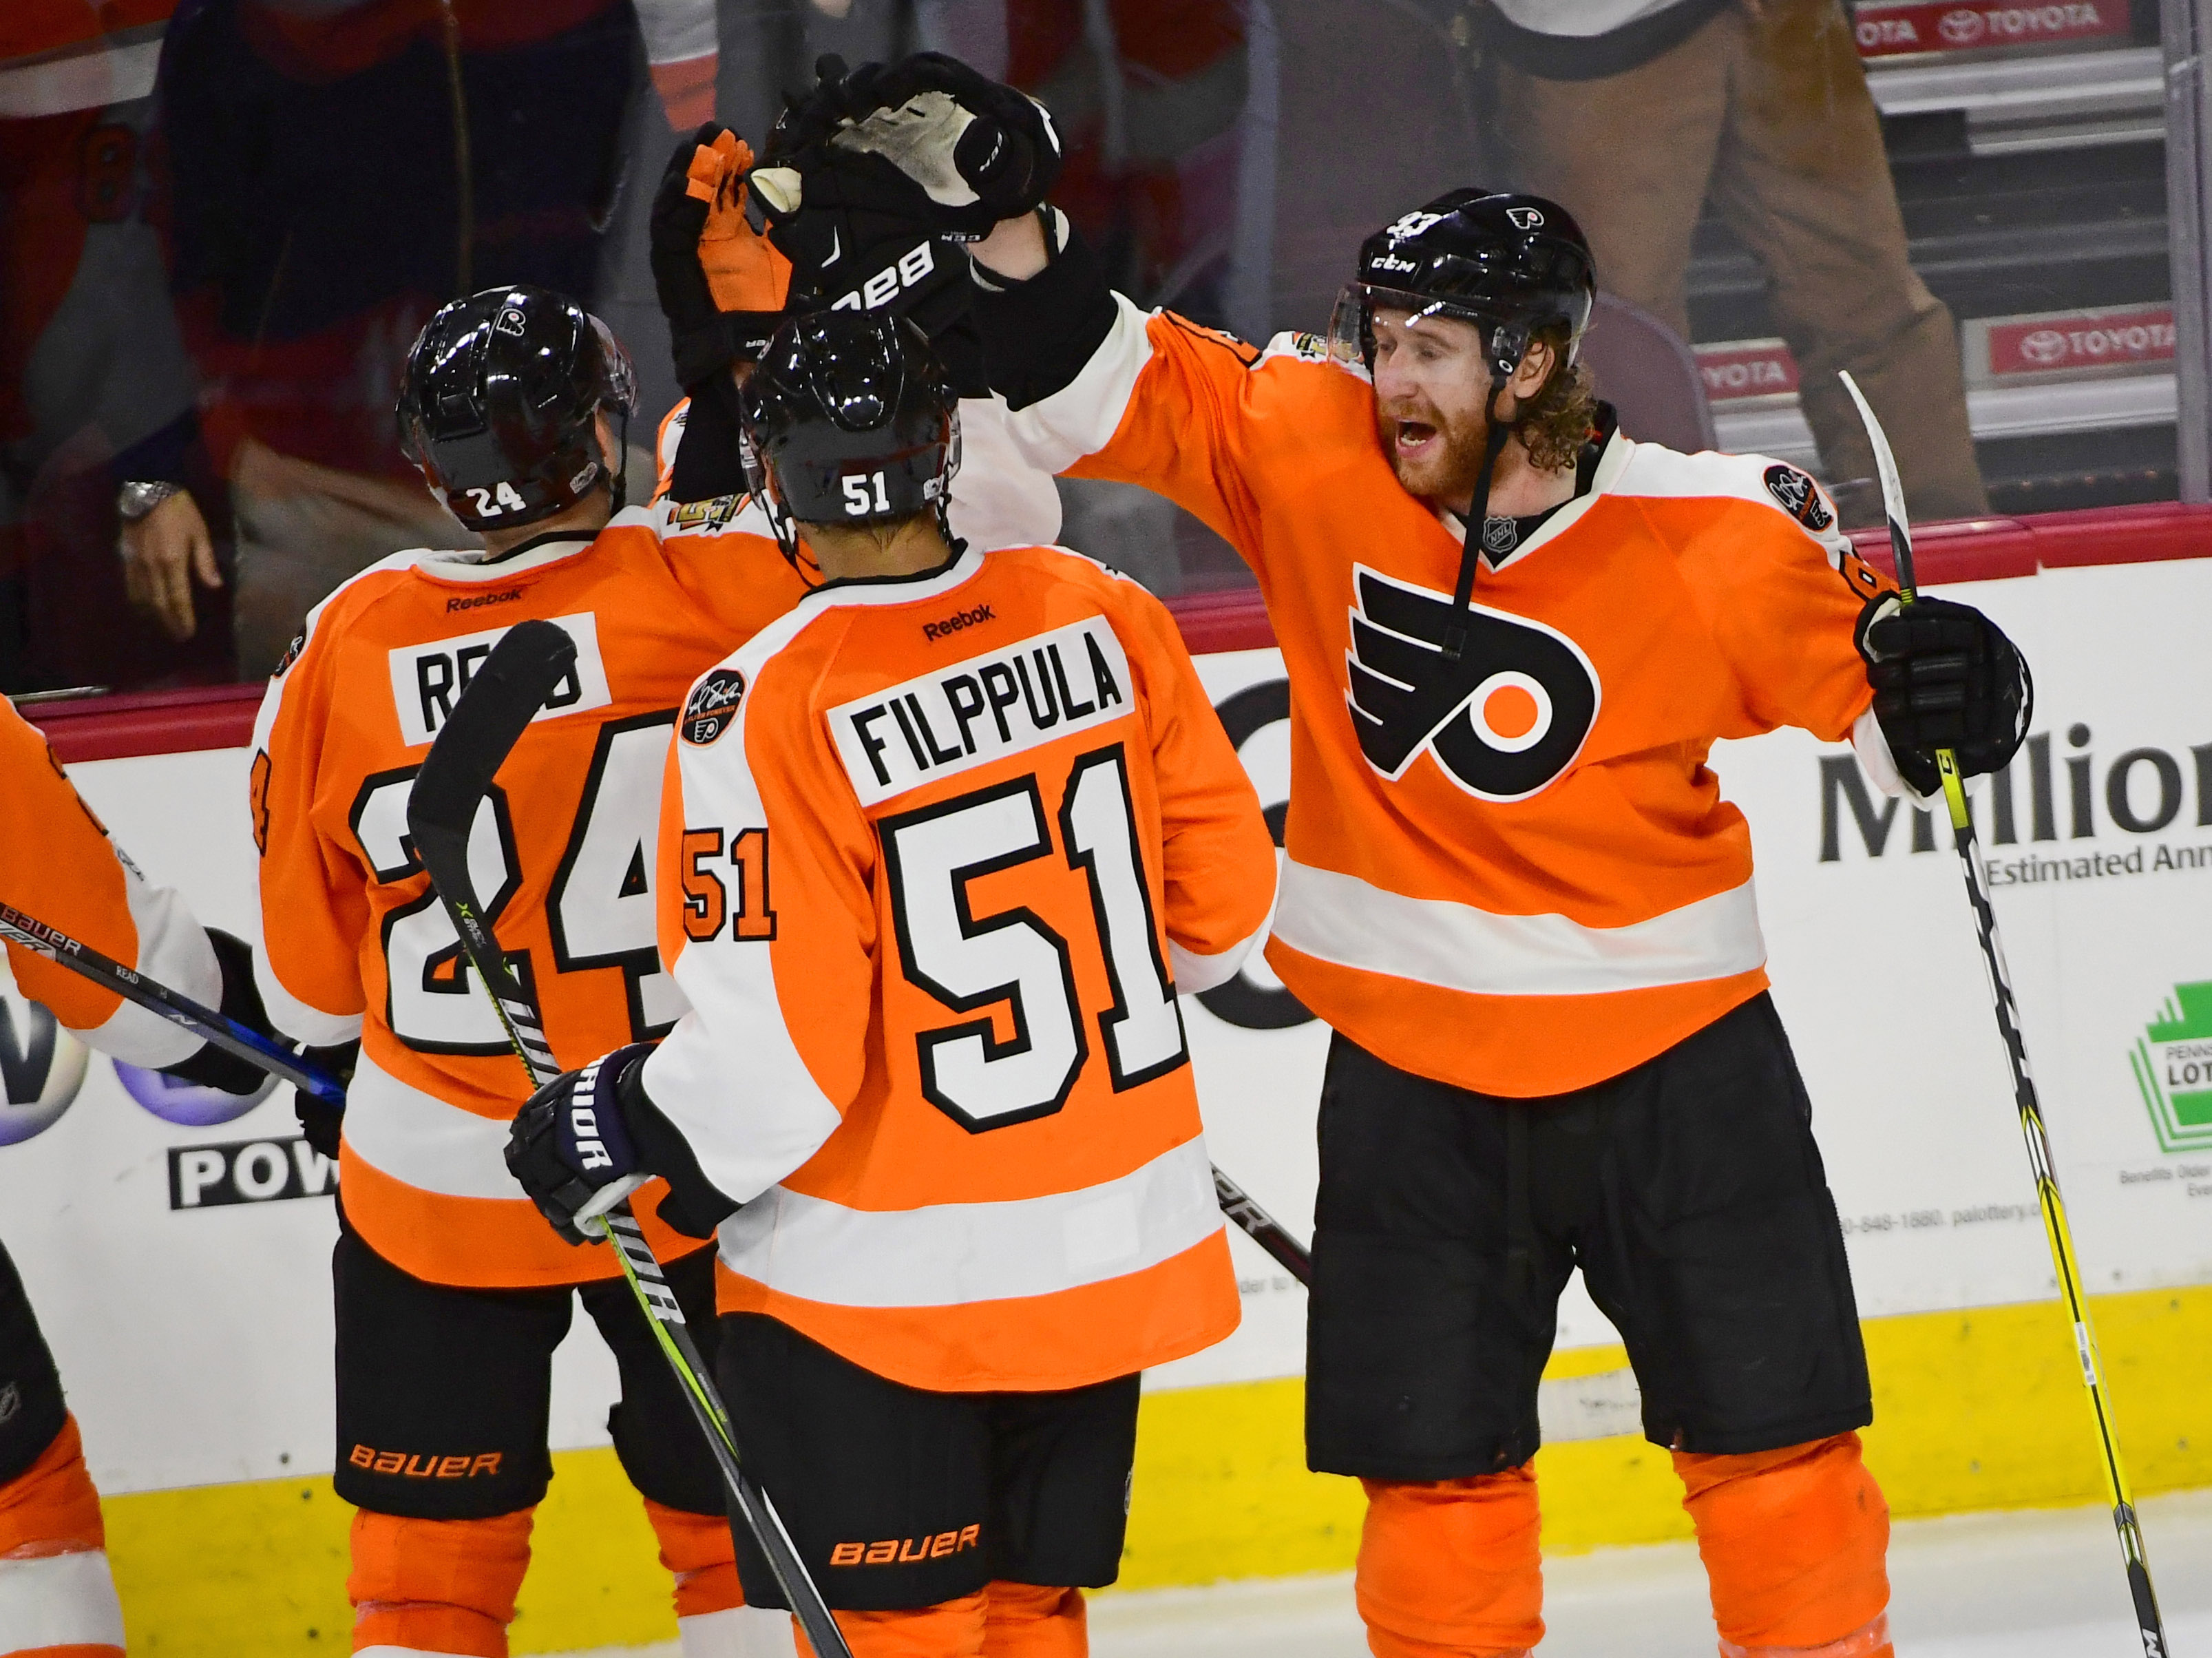 9913054-nhl-florida-panthers-at-philadelphia-flyers-1